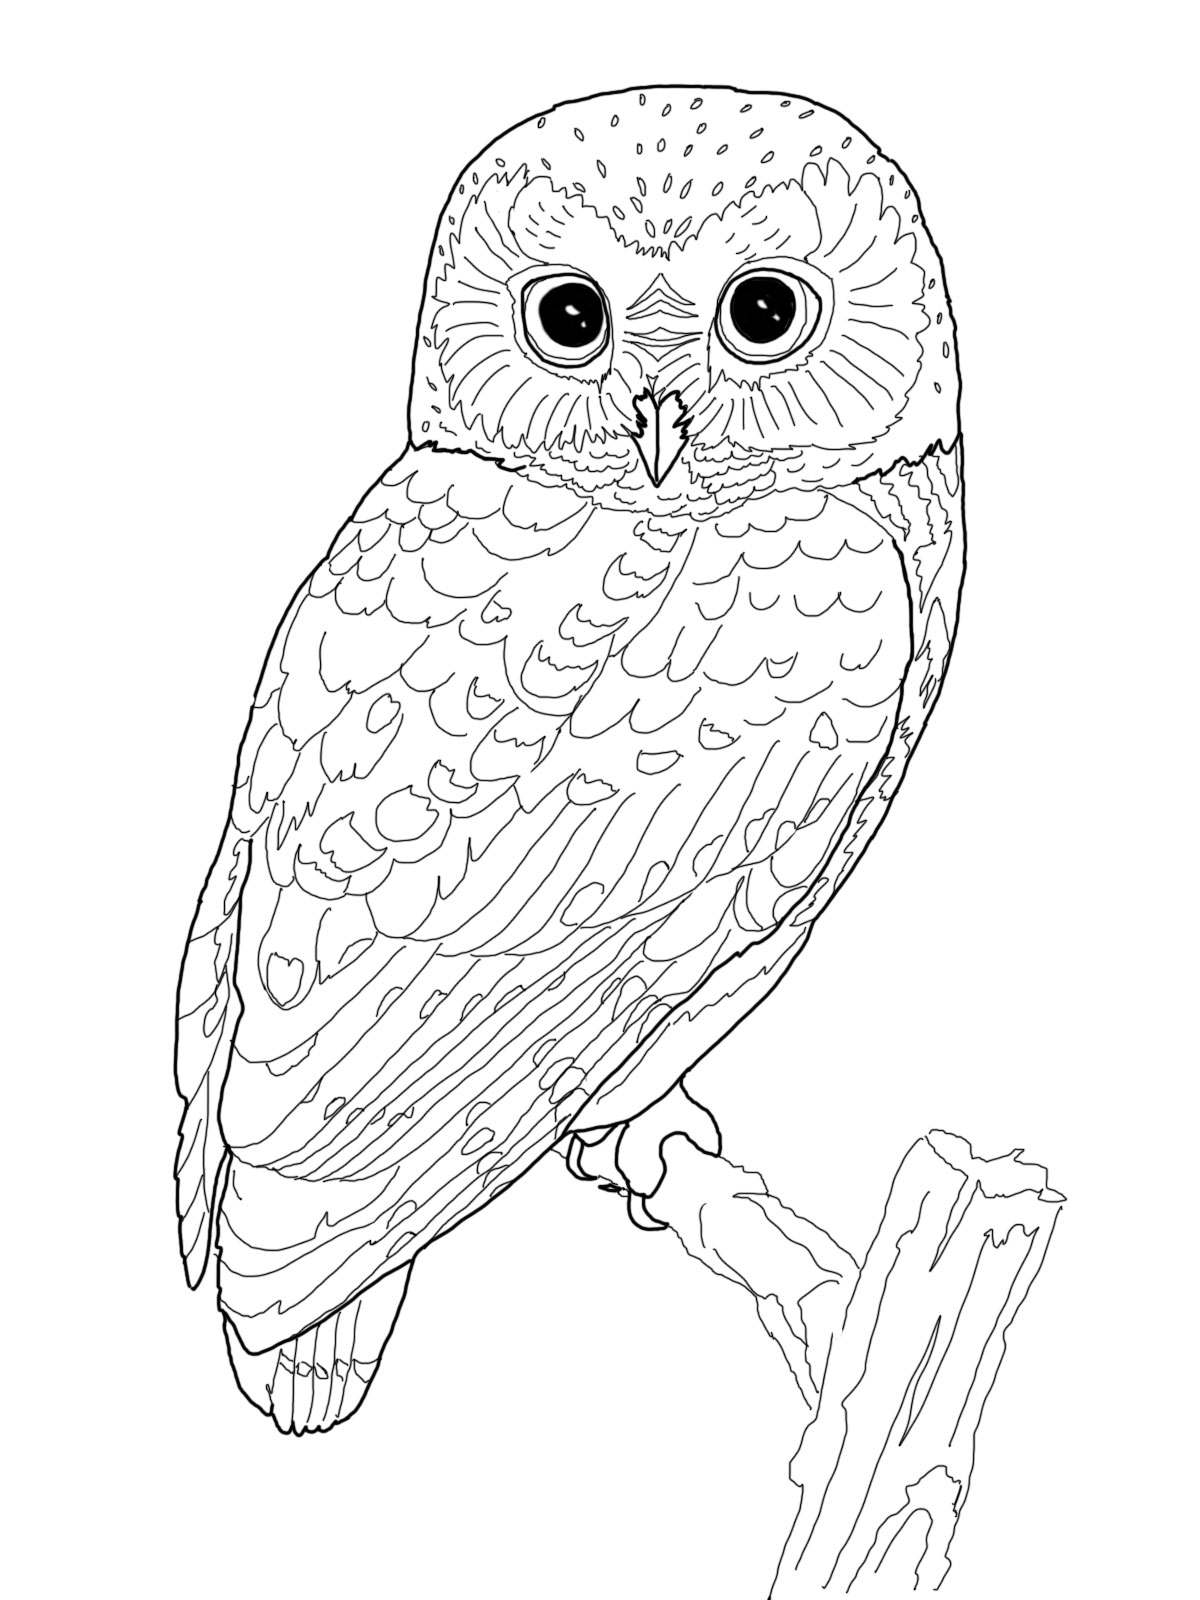 finished owl coloring pages pin by kristina livesay on animal coloring pages coloring owl pages finished